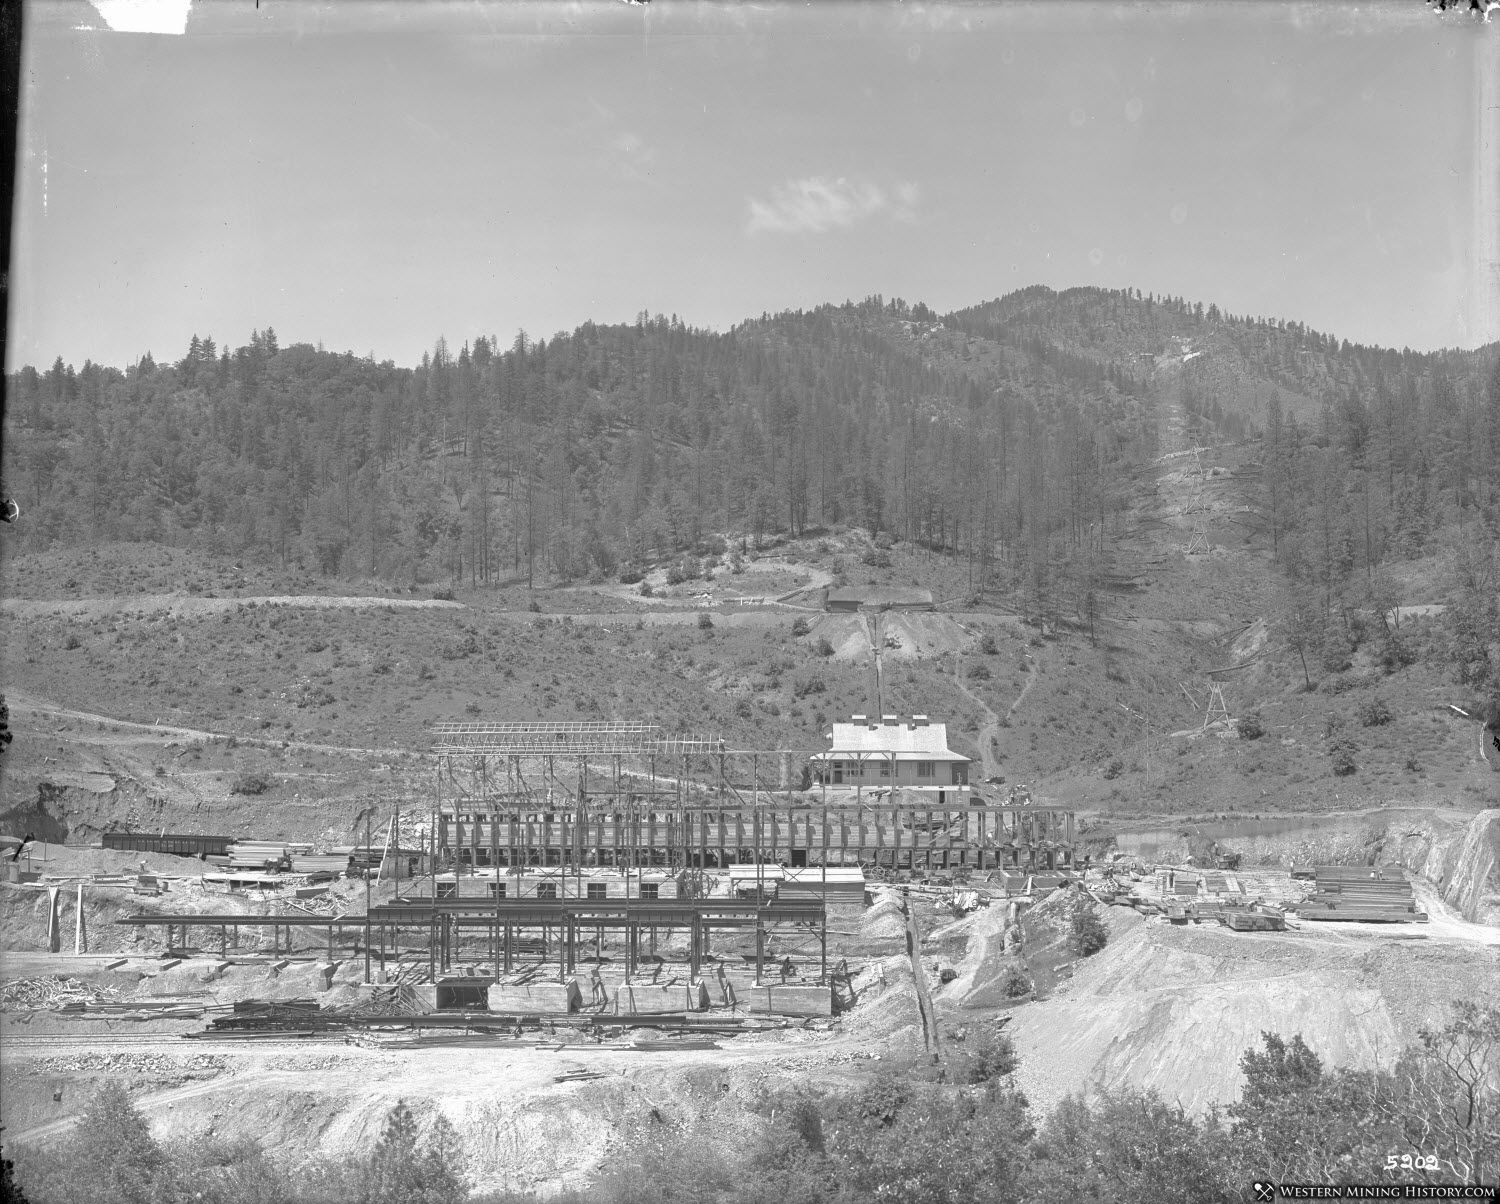 Mammoth Smelter Construction